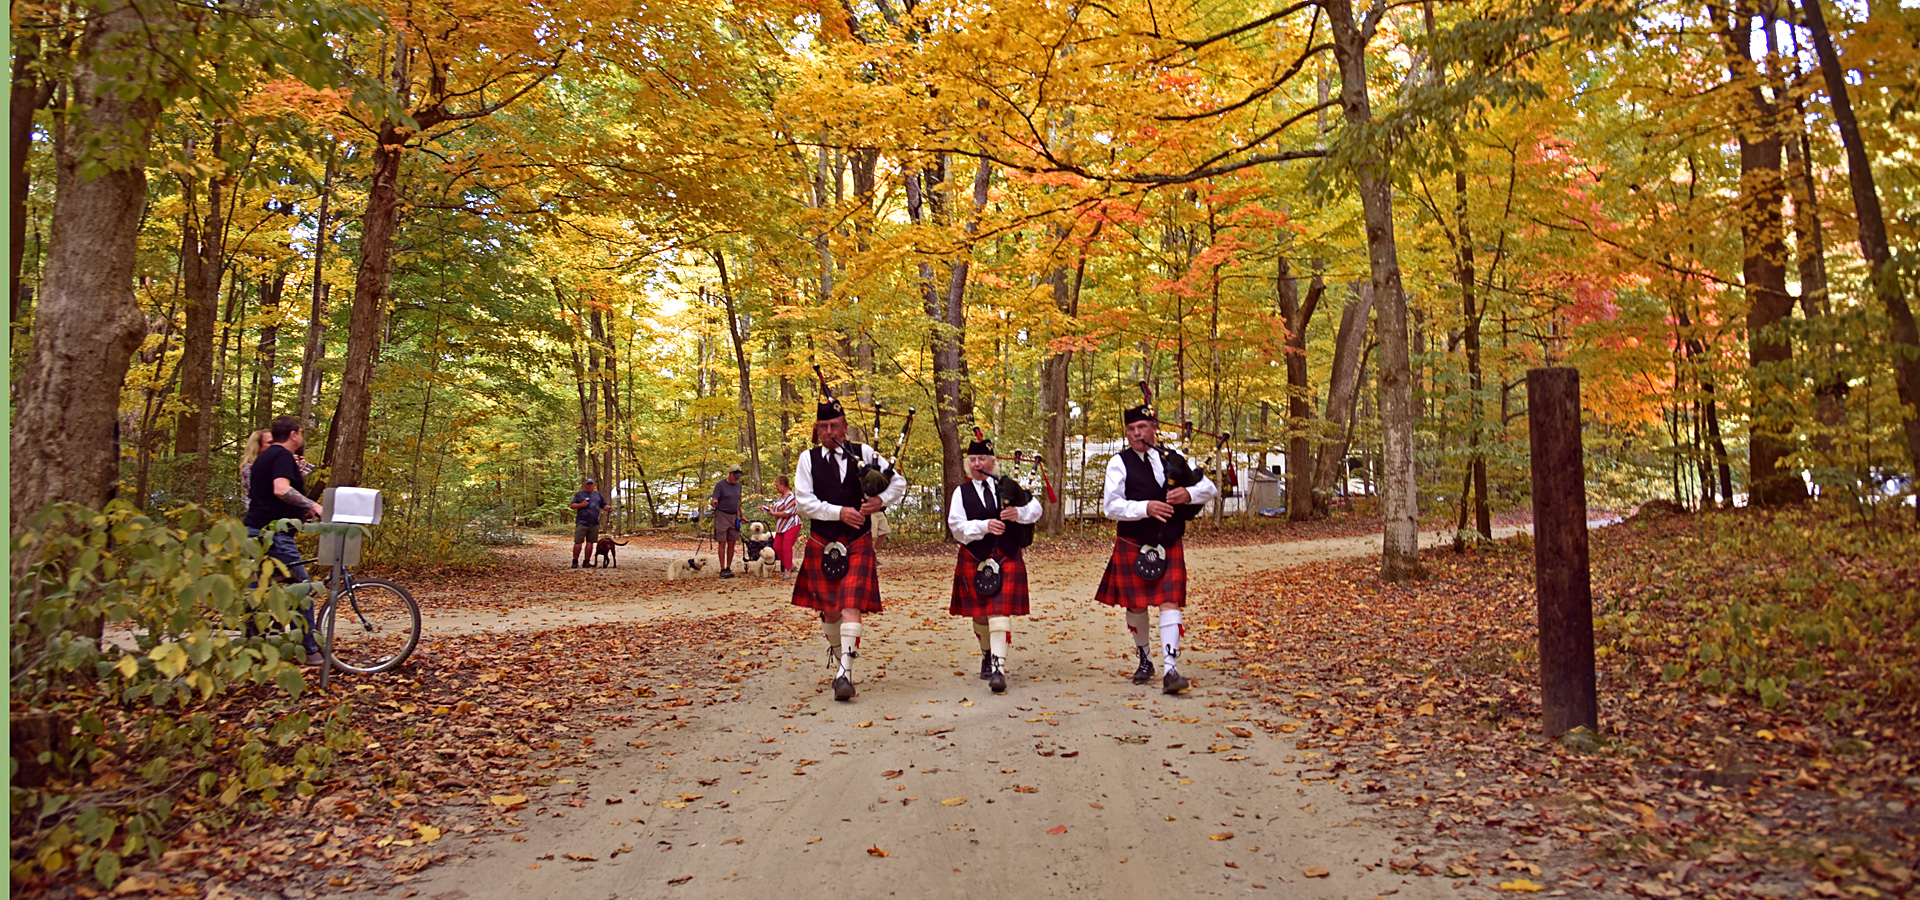 Bagpipers in Autumn